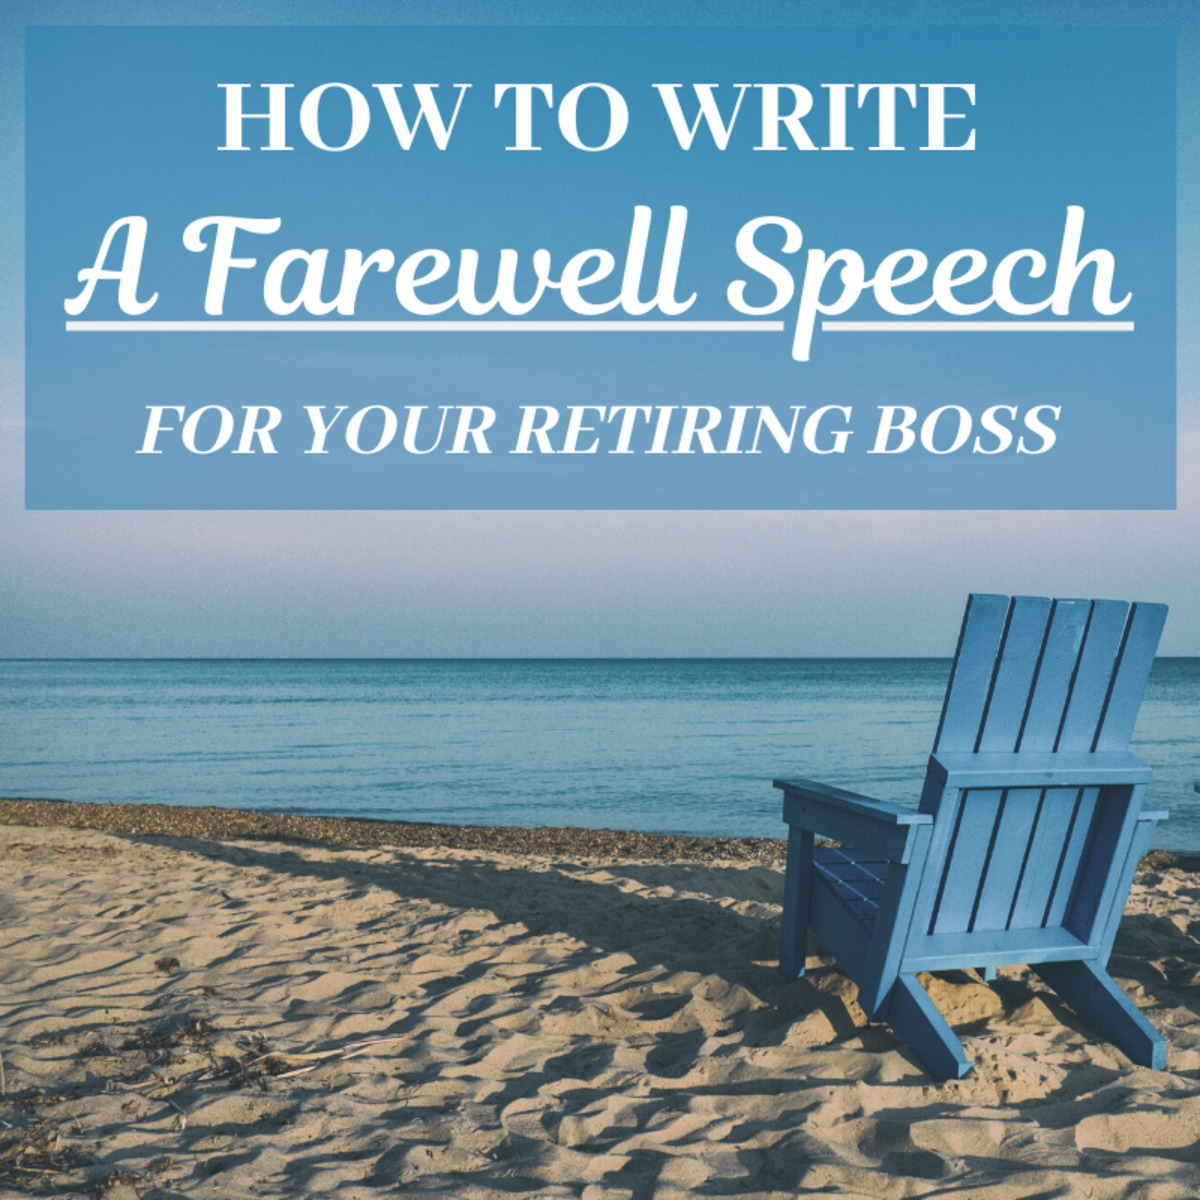 Writing a speech can be intimidating, especially if it's for a big event like a boss or manager's retirement. Here are some tips that will make the process easier.